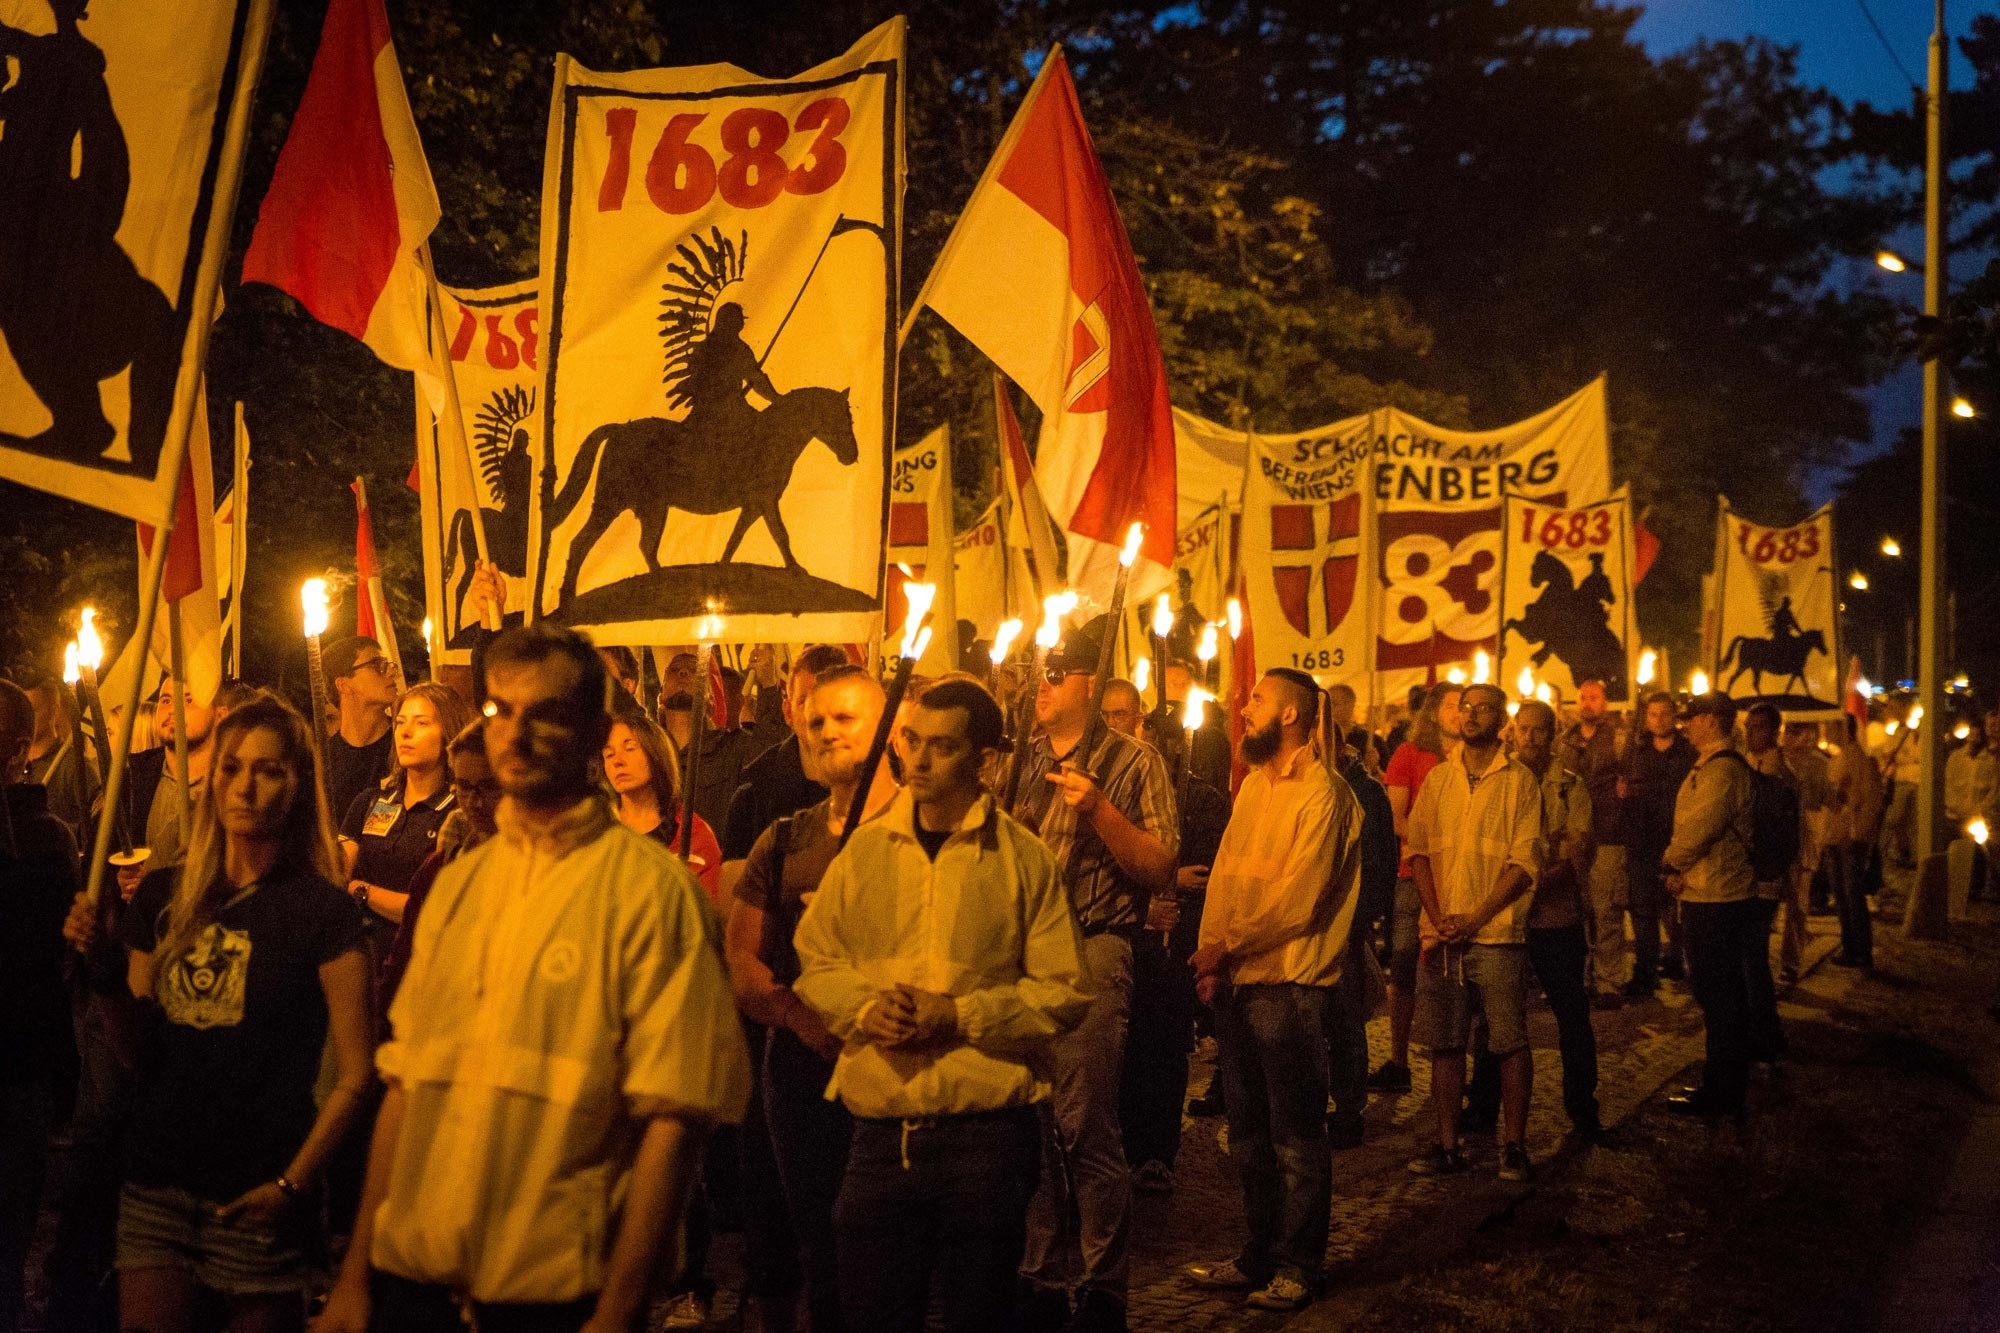 Identitarian movement demonstrates at the site of the 1683 Battle of Vienna - Kahlenberg, 2017